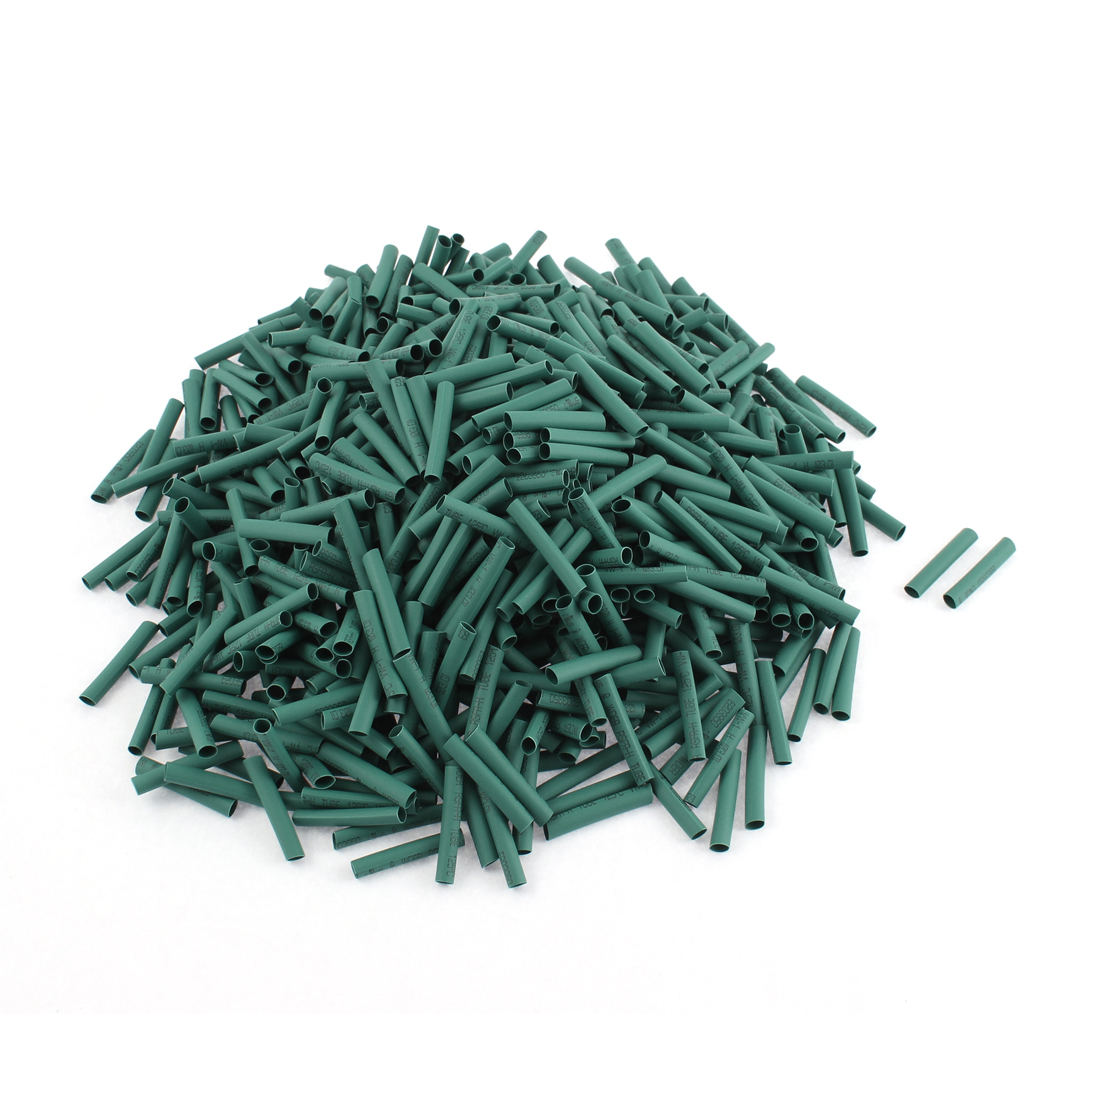 Electrical Connection Cable Sleeve 25mm Length Heat Shrink Tubing Green 1000Pcs